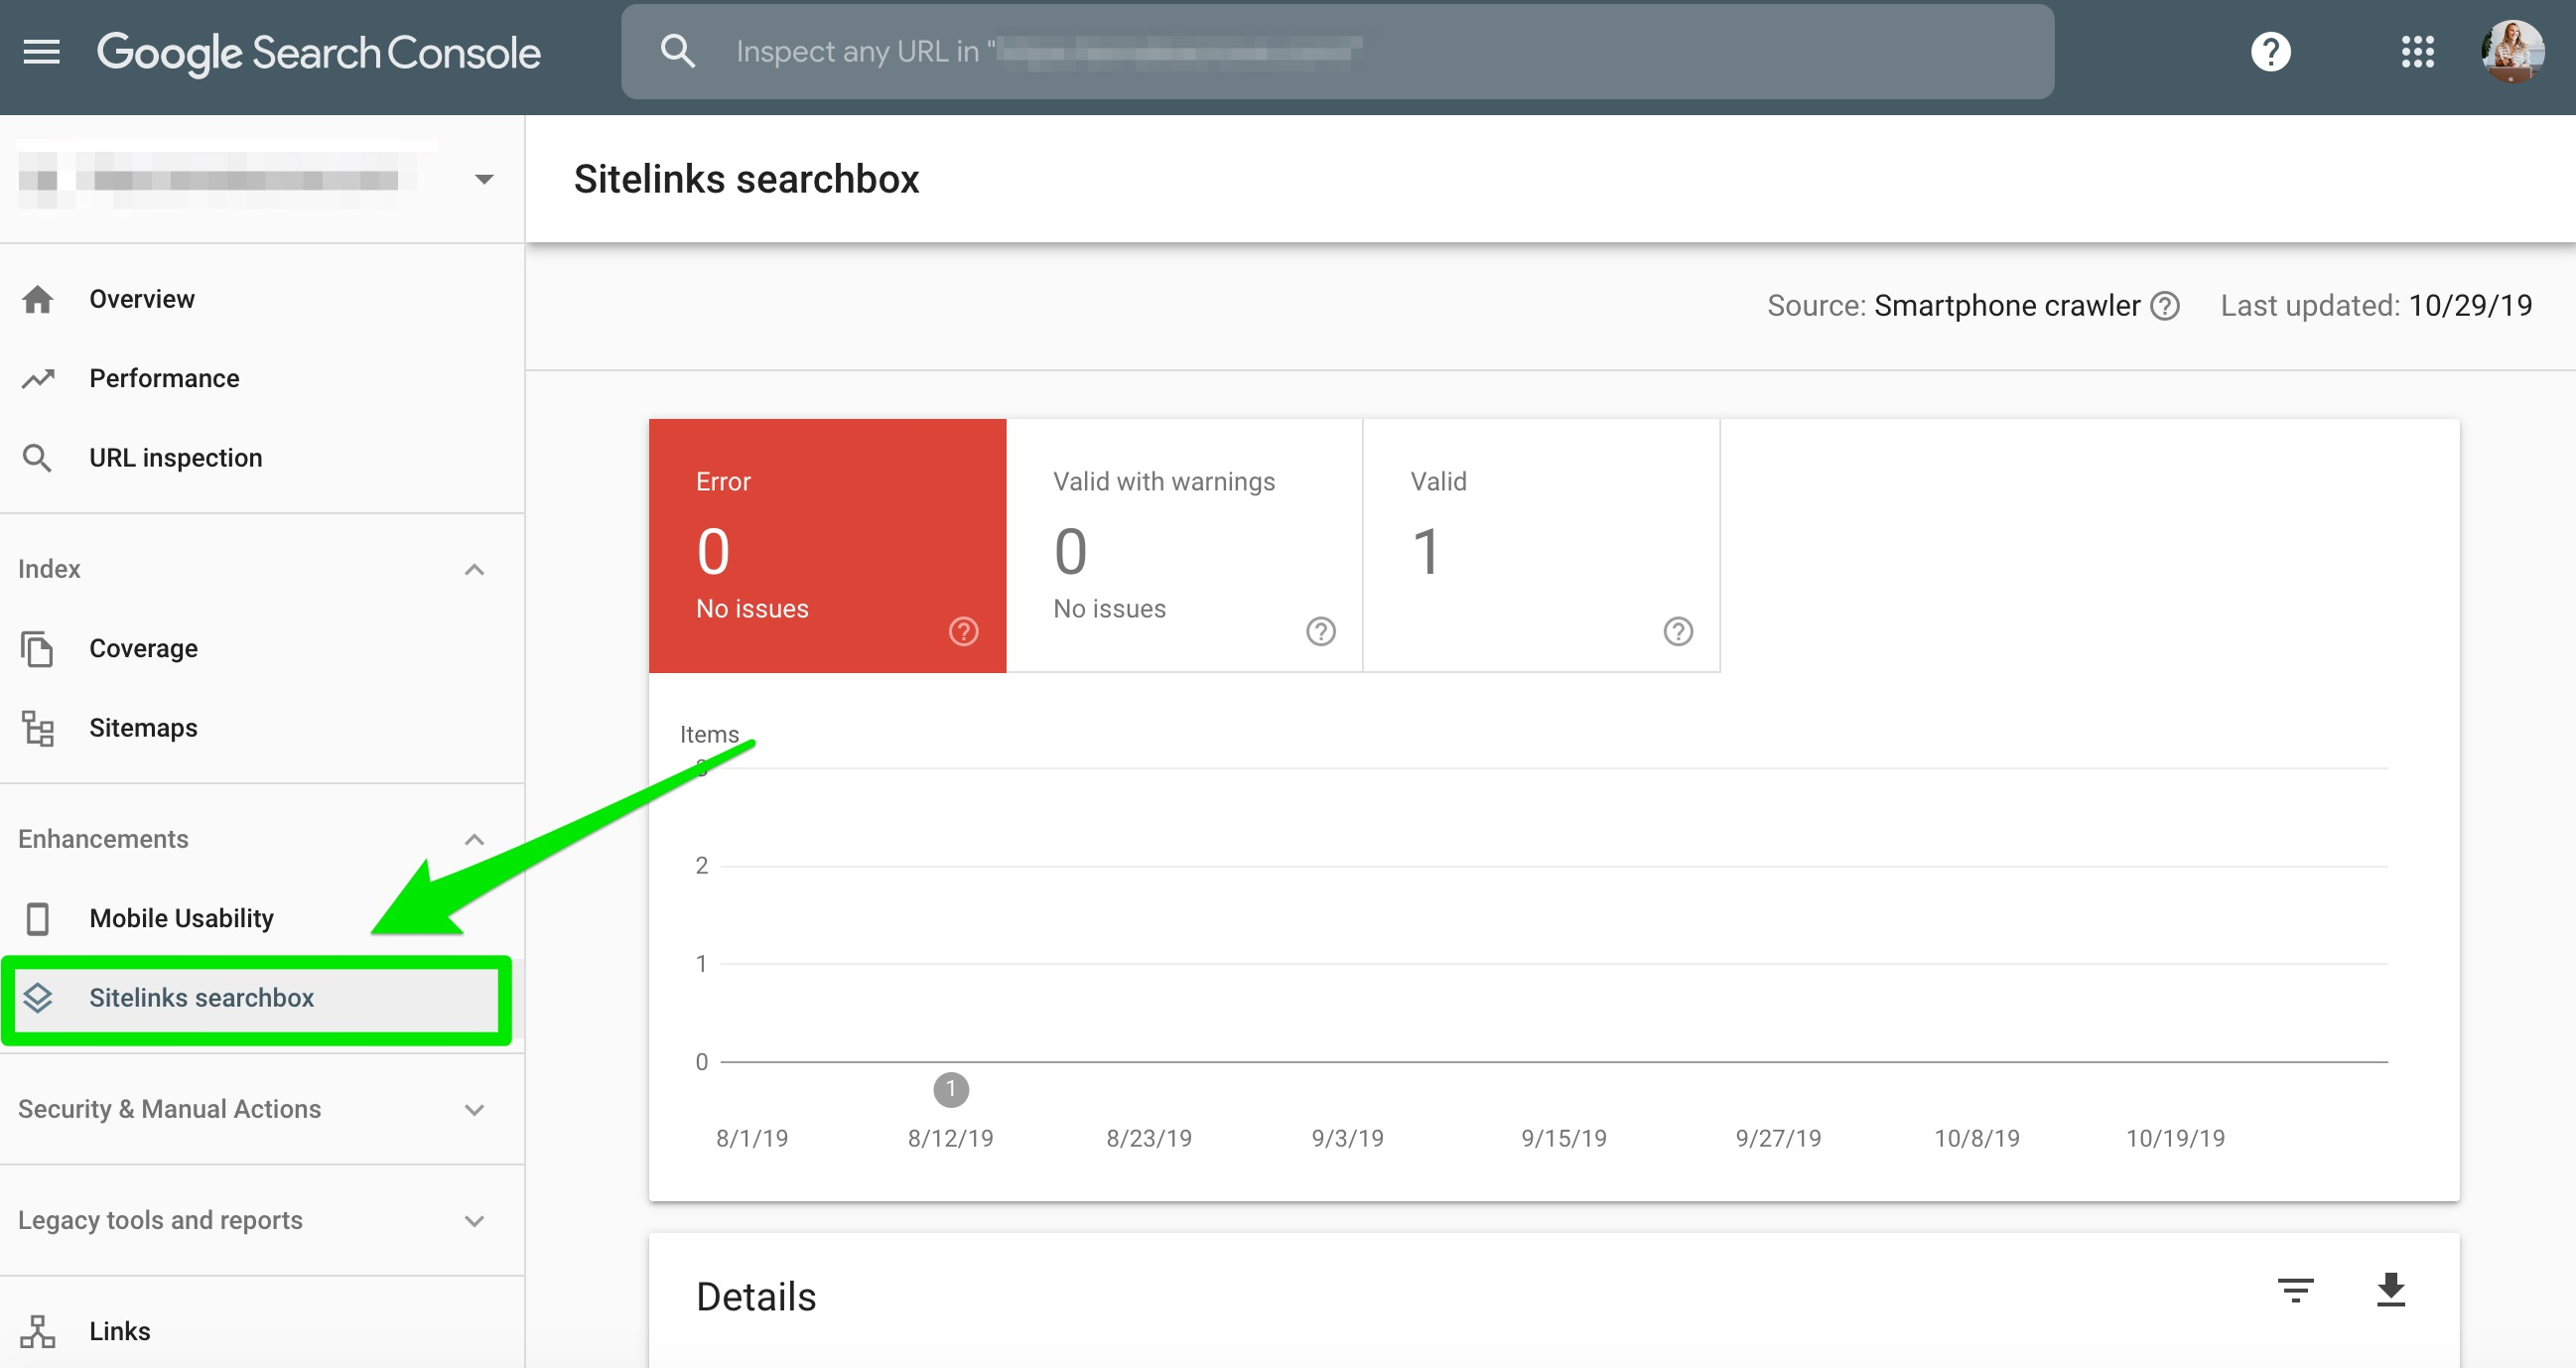 sitelinks searchbox google search console